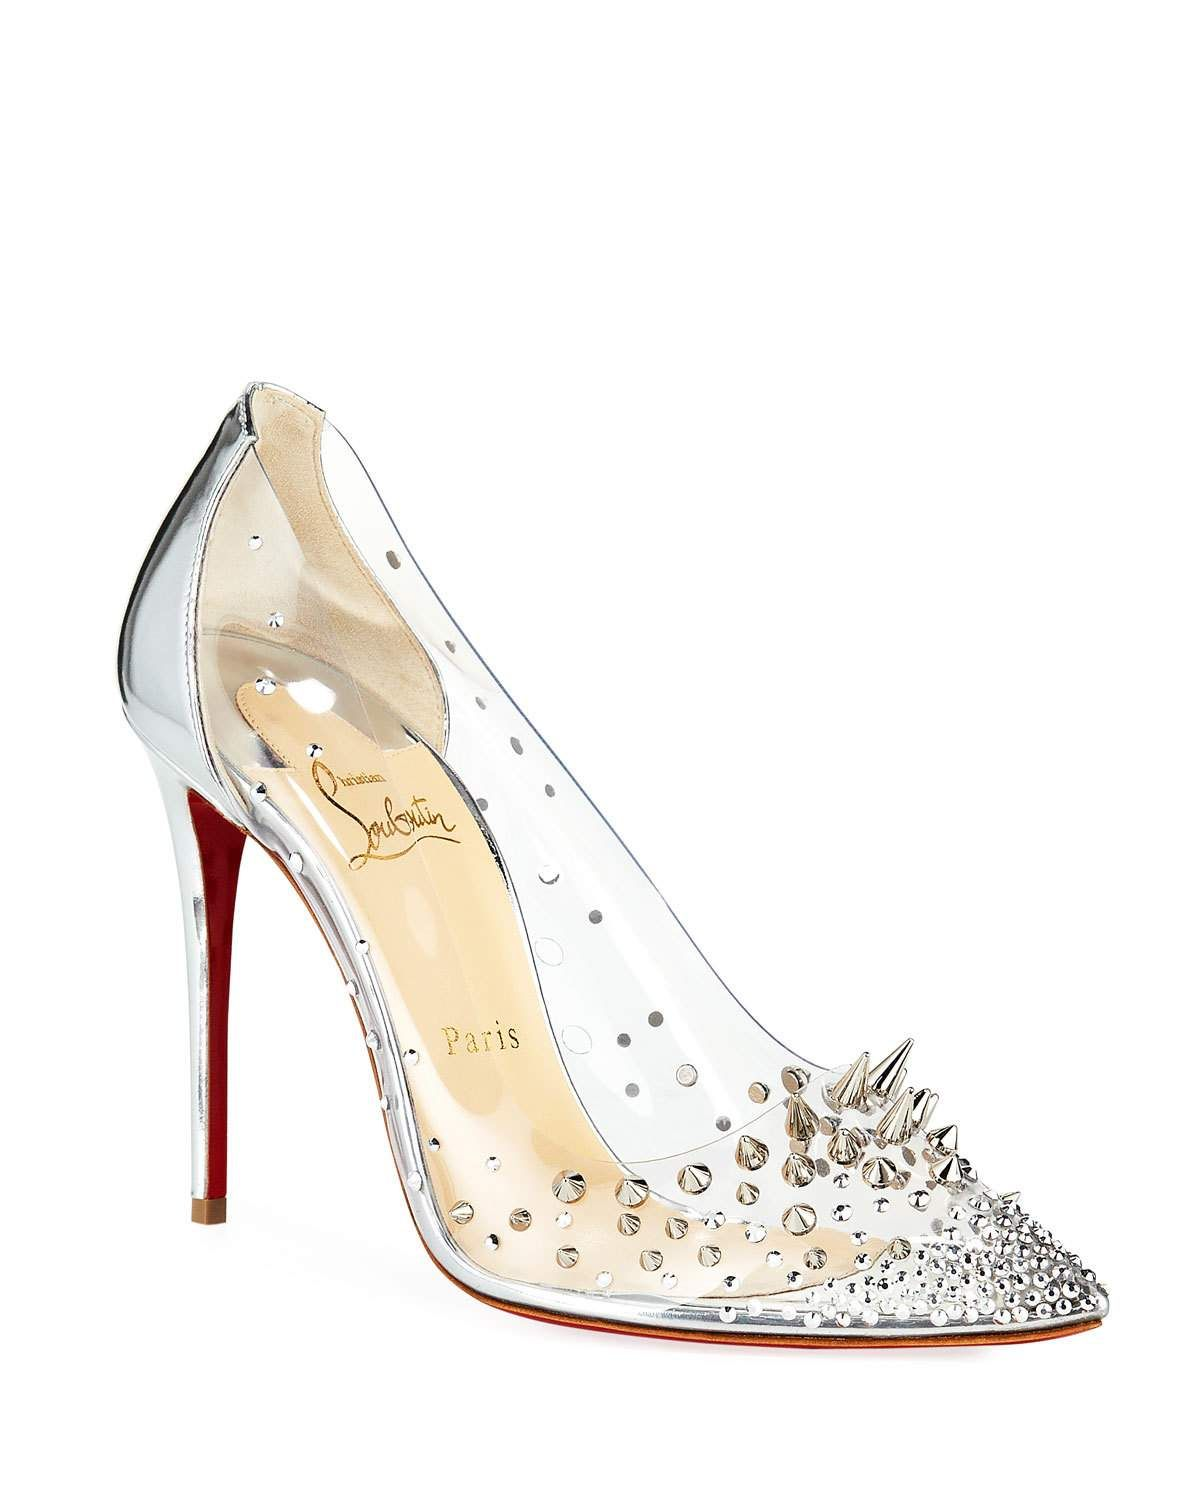 Christian Louboutin Grotika Spiked Red